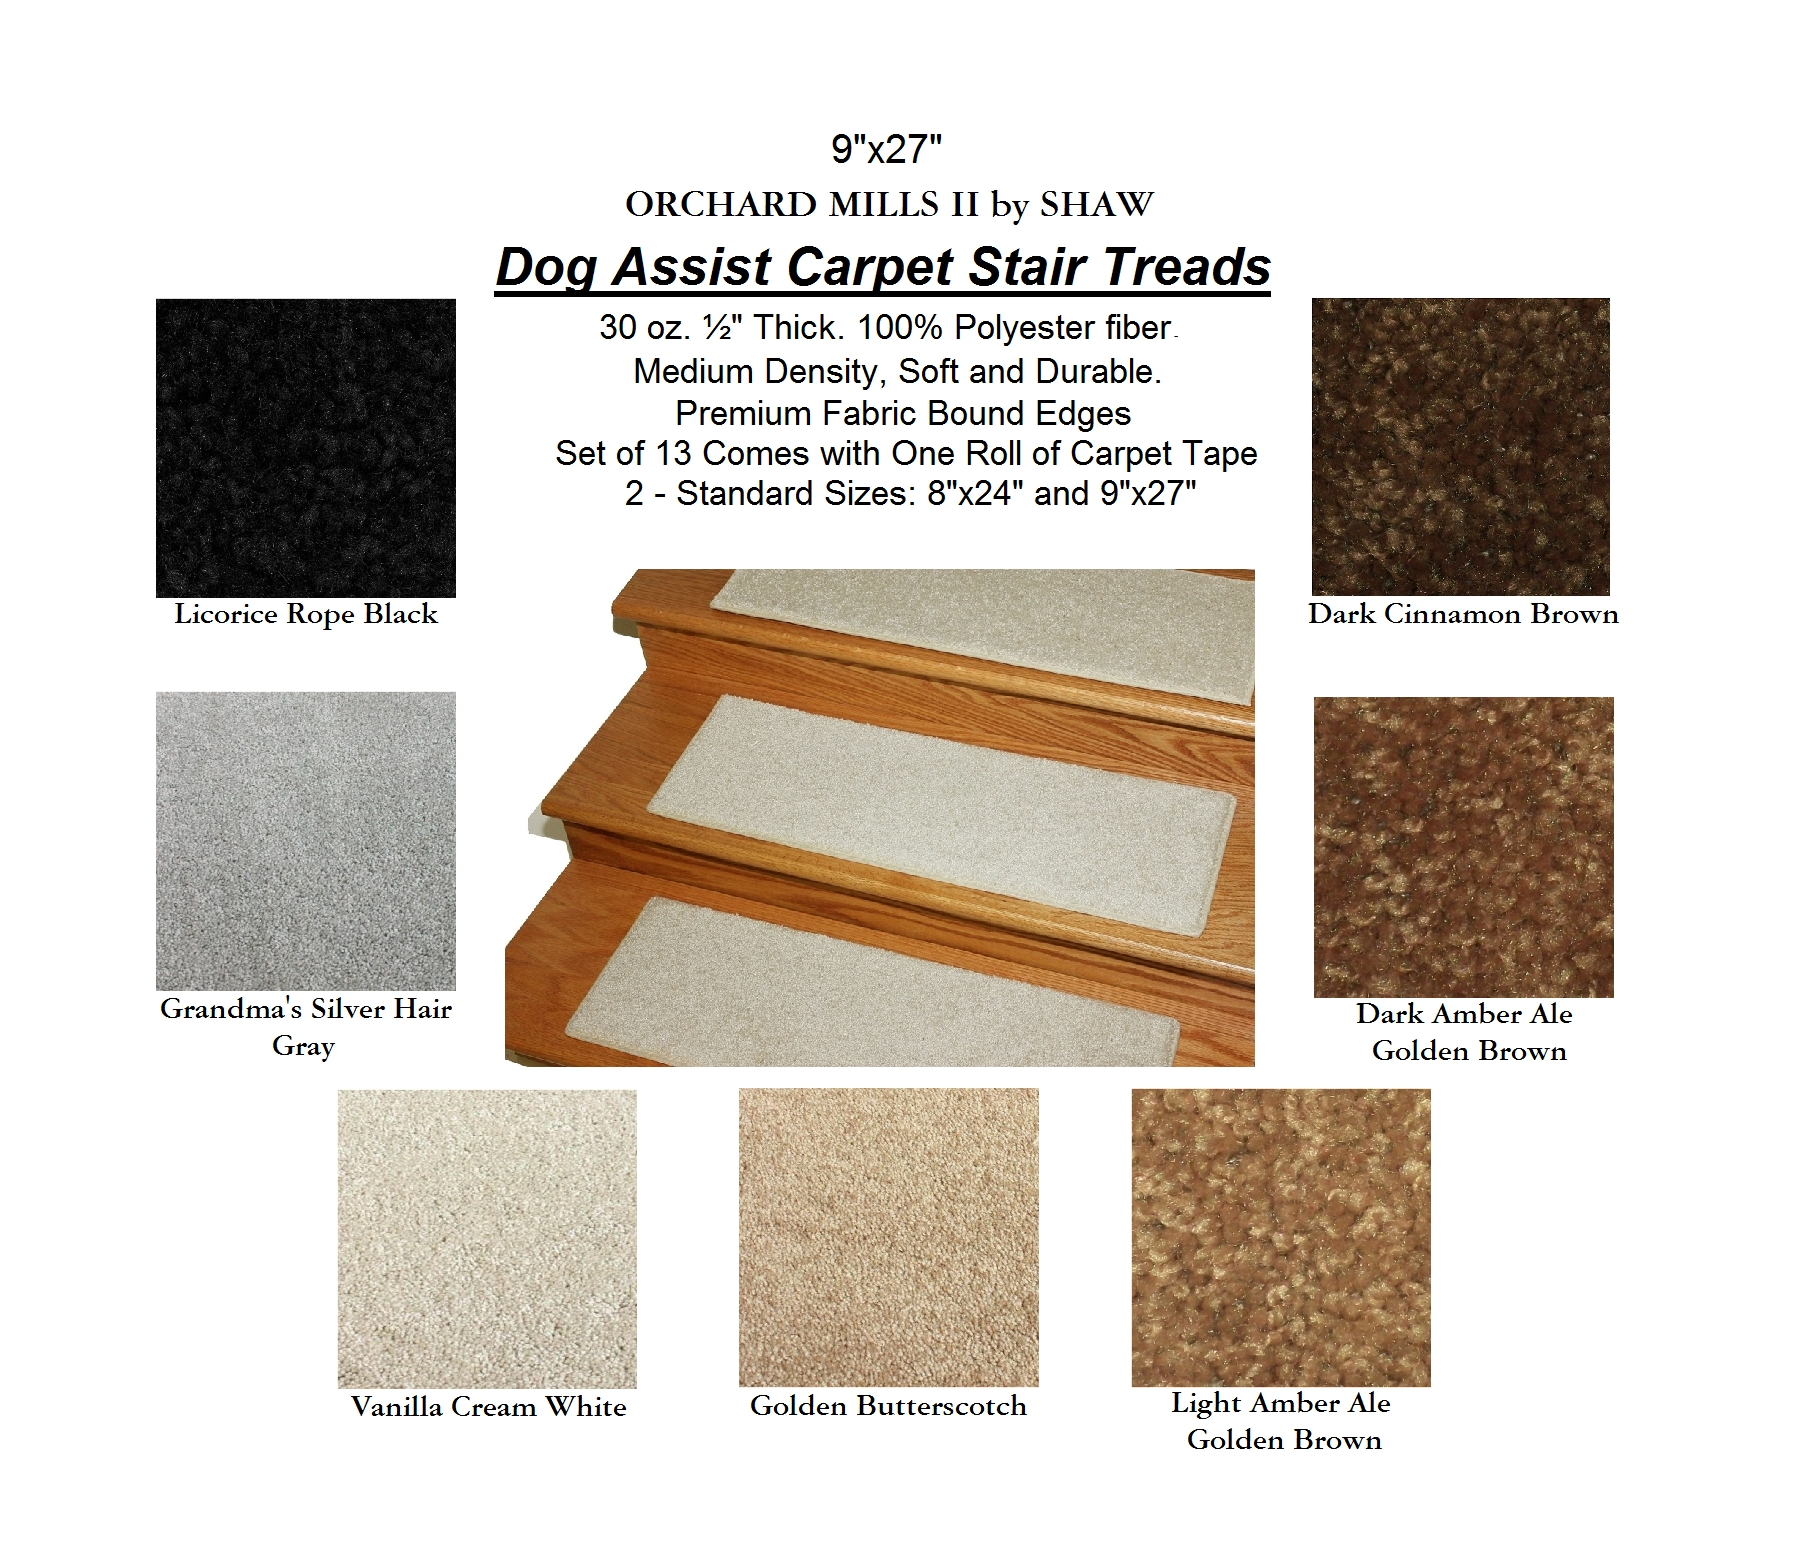 Mills Aii Dog Assist Carpet Stair Treads In Carpet Stair Treads For Dogs (Image 12 of 15)